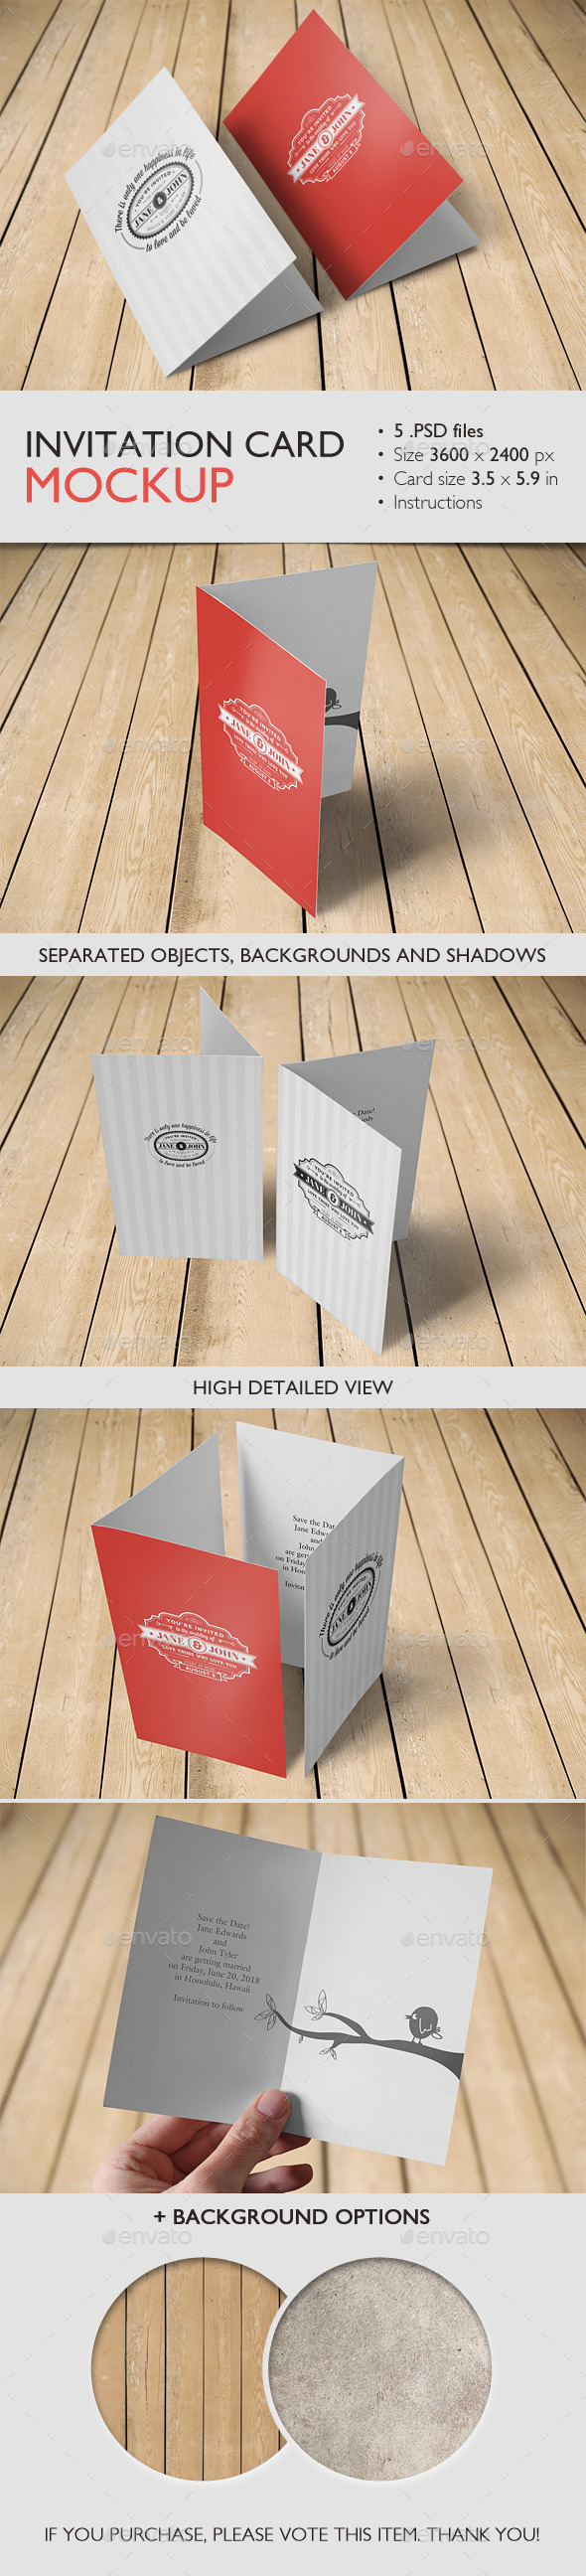 Invitation Card Mockup - Brochures Print